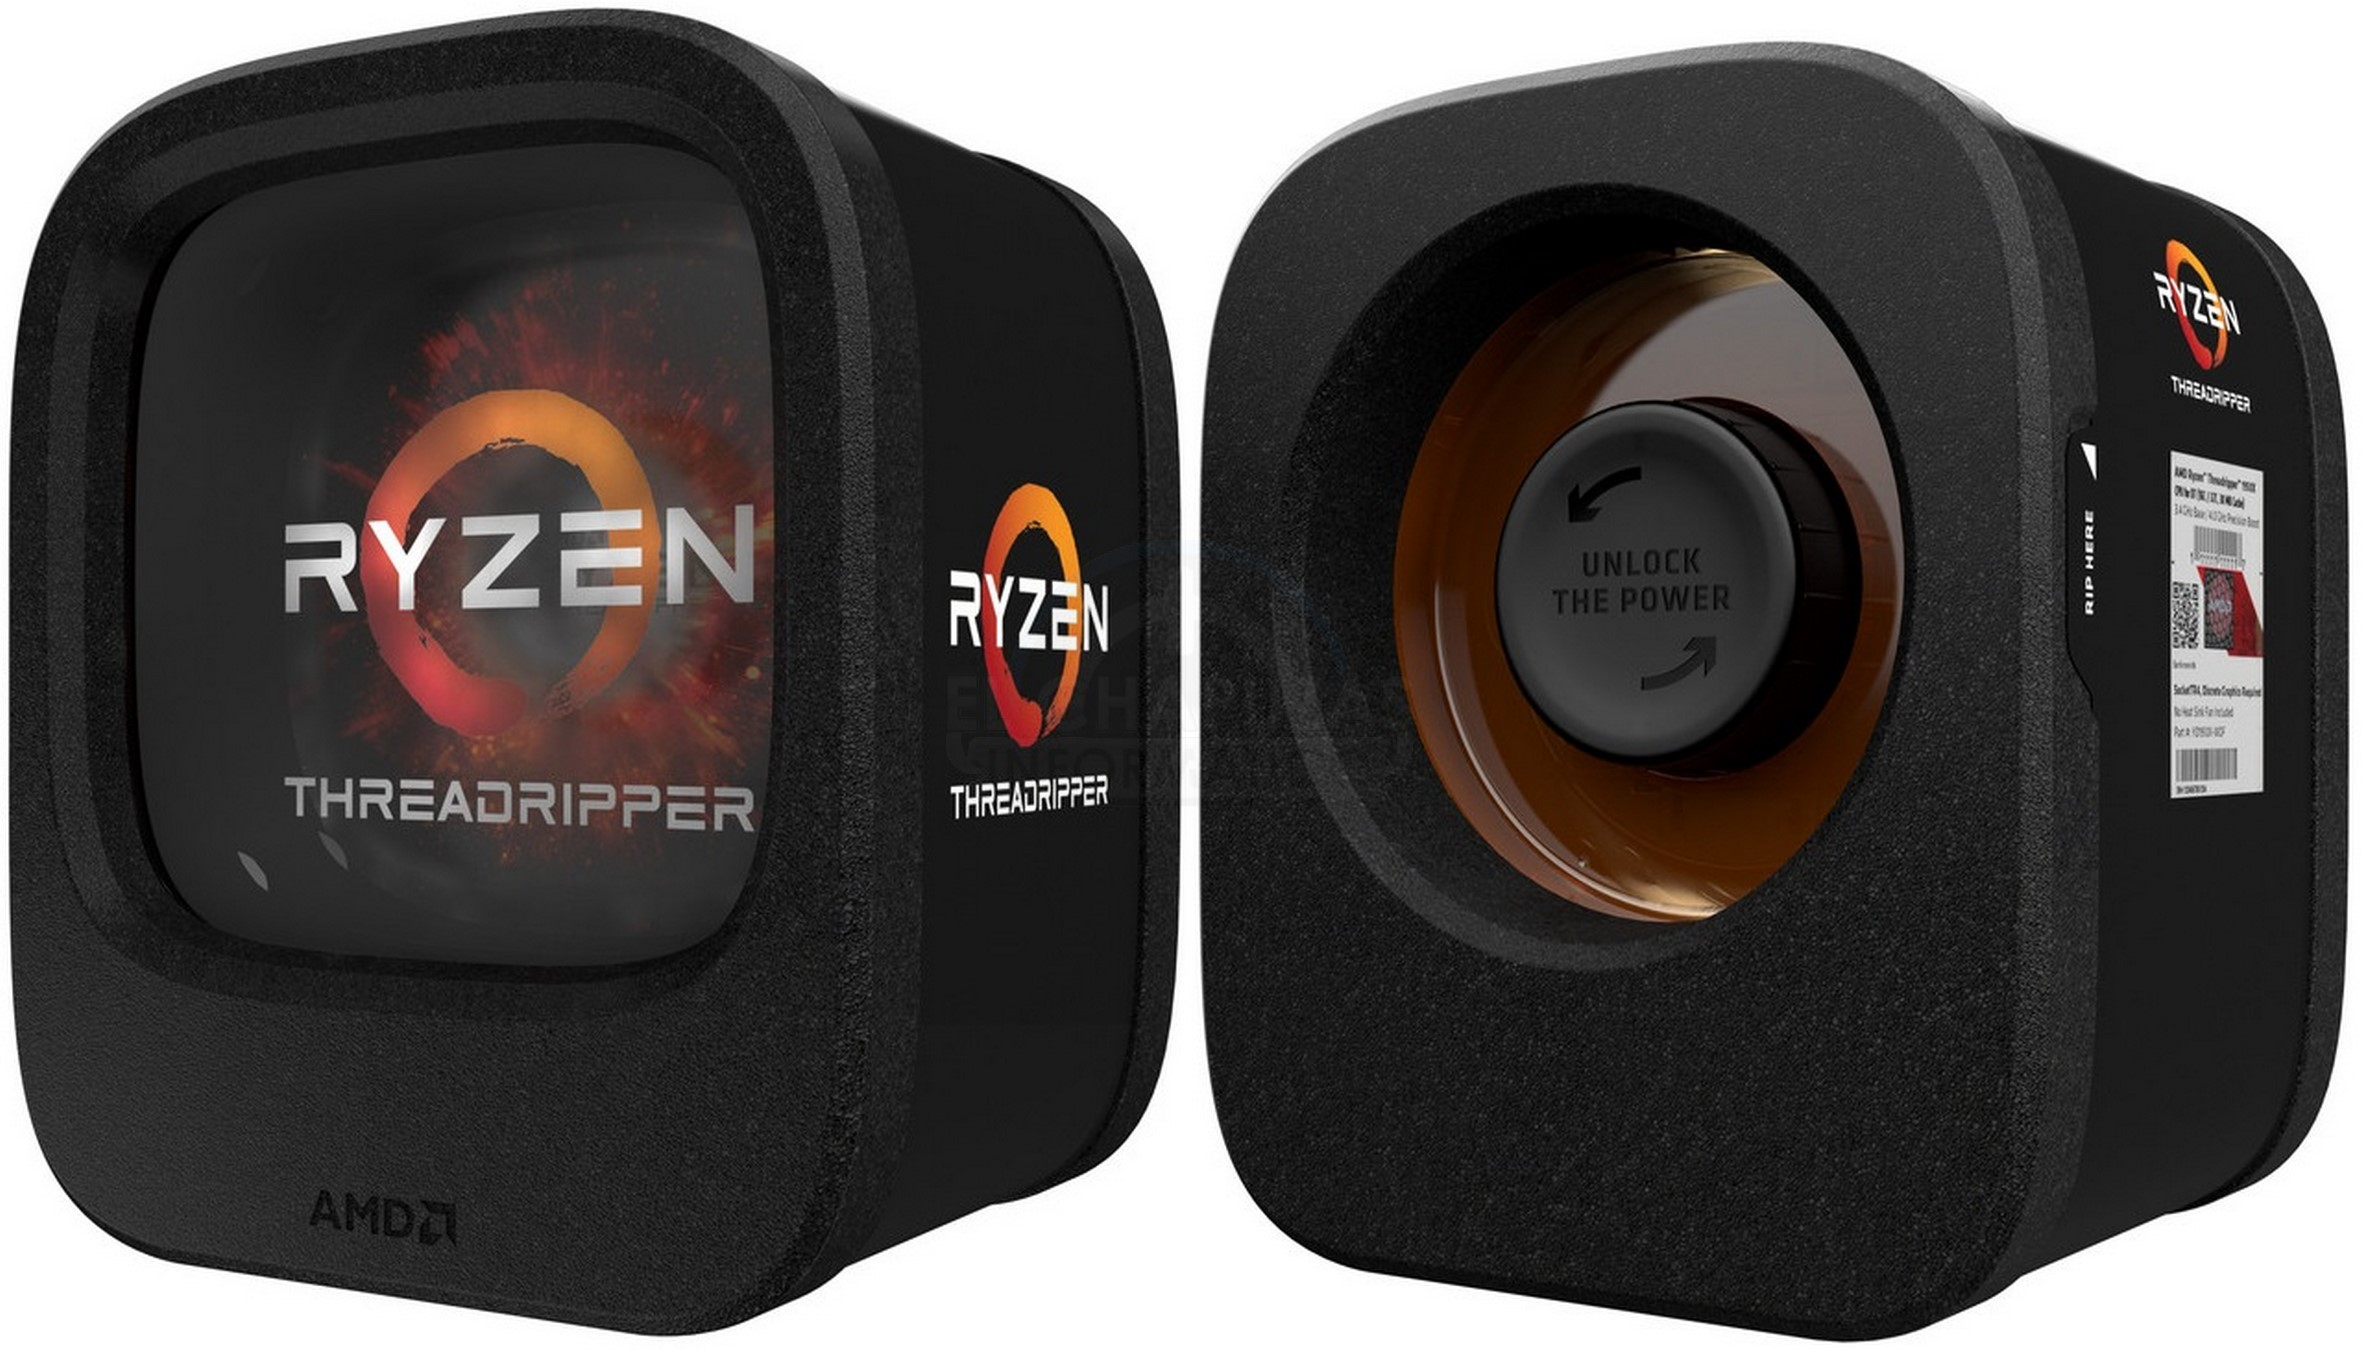 AMD-Ryzen-Threadripper-box-caja[1]